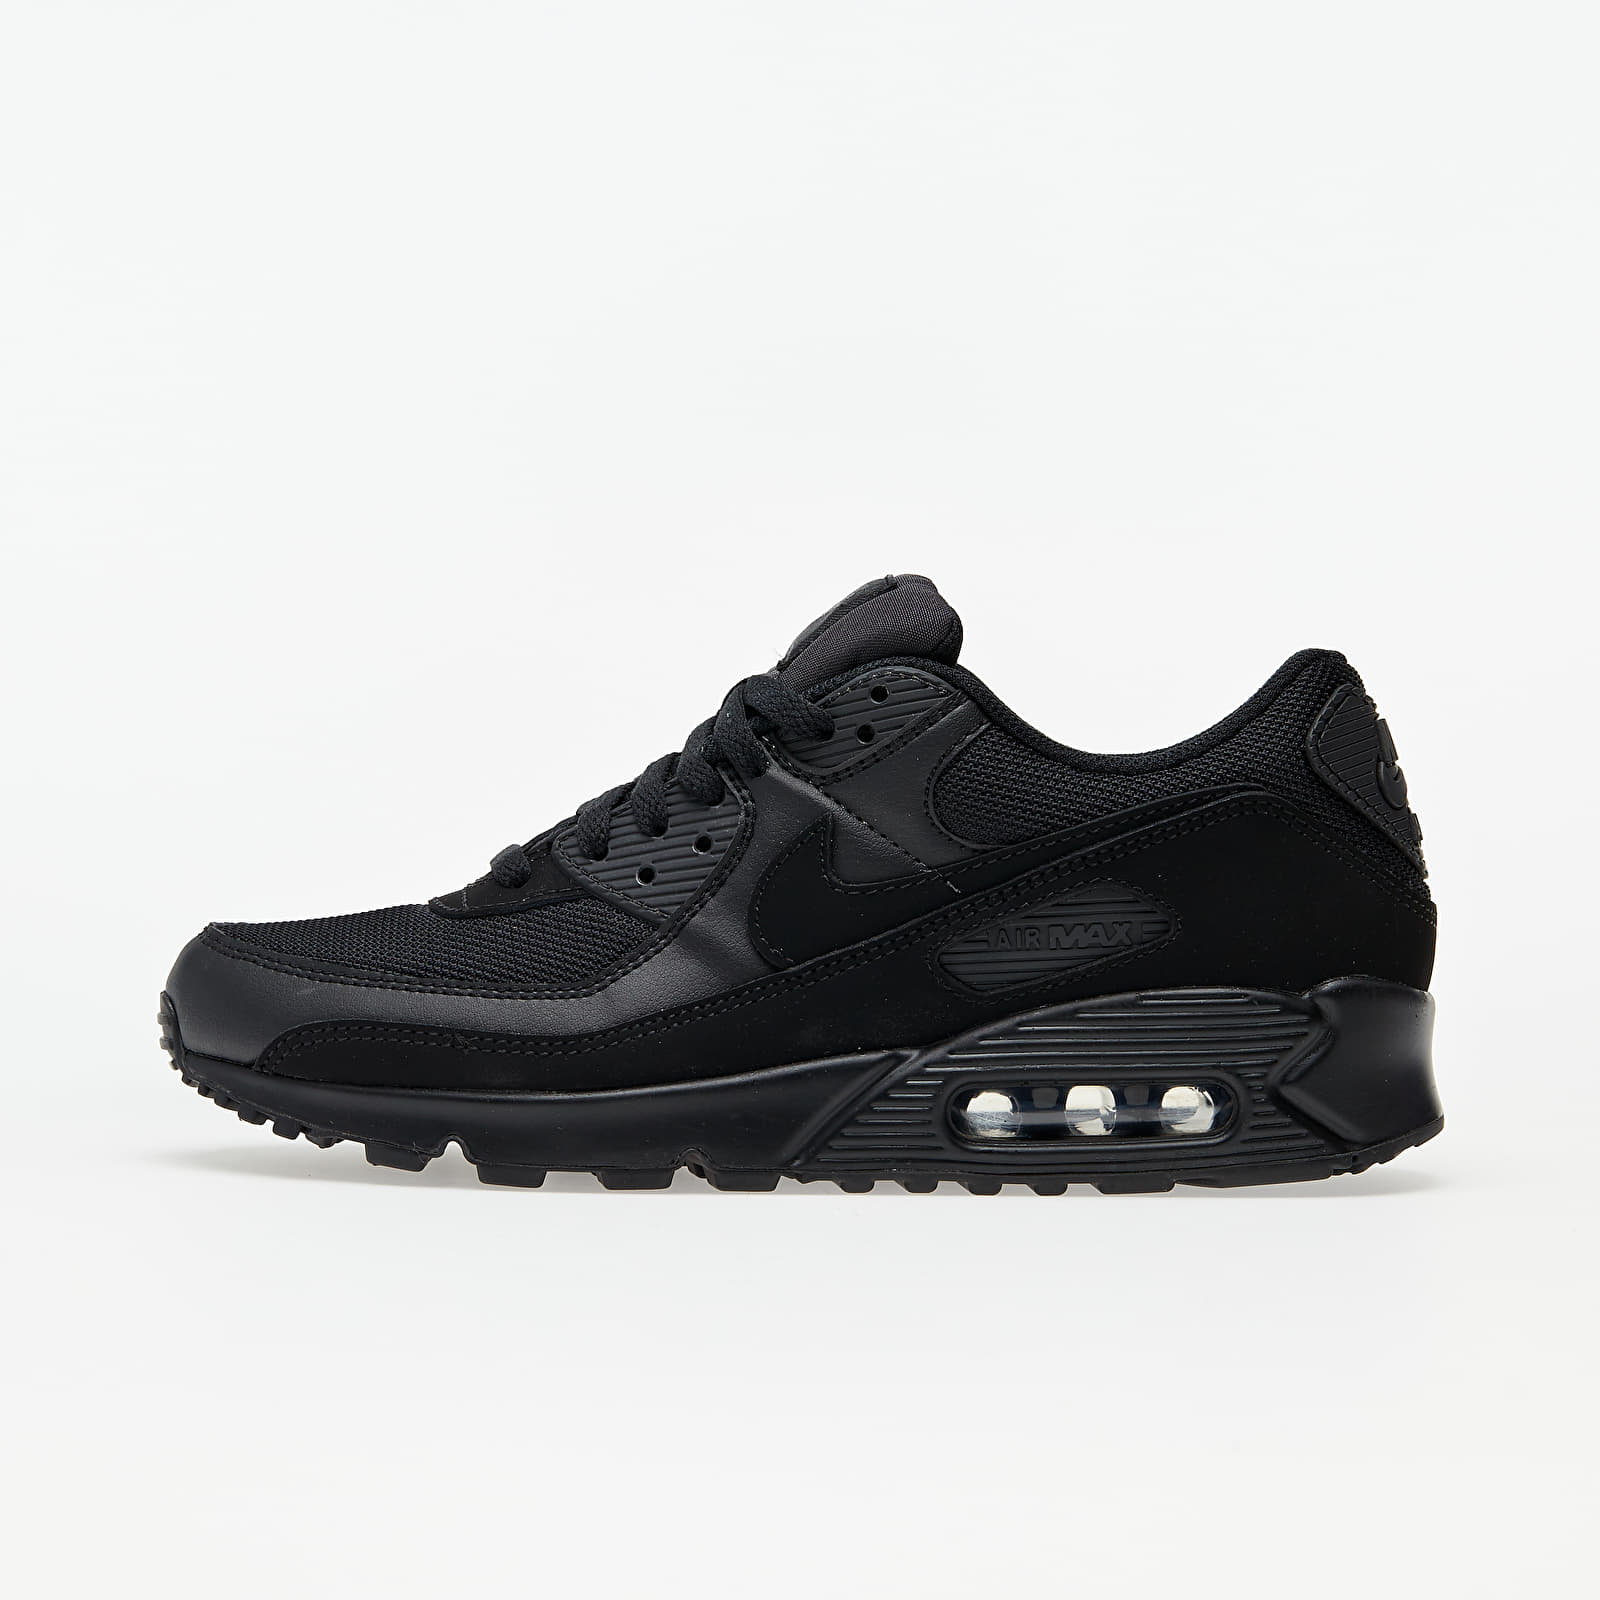 Nike Air Max 90 Black/ Black-Black-White EUR 42.5